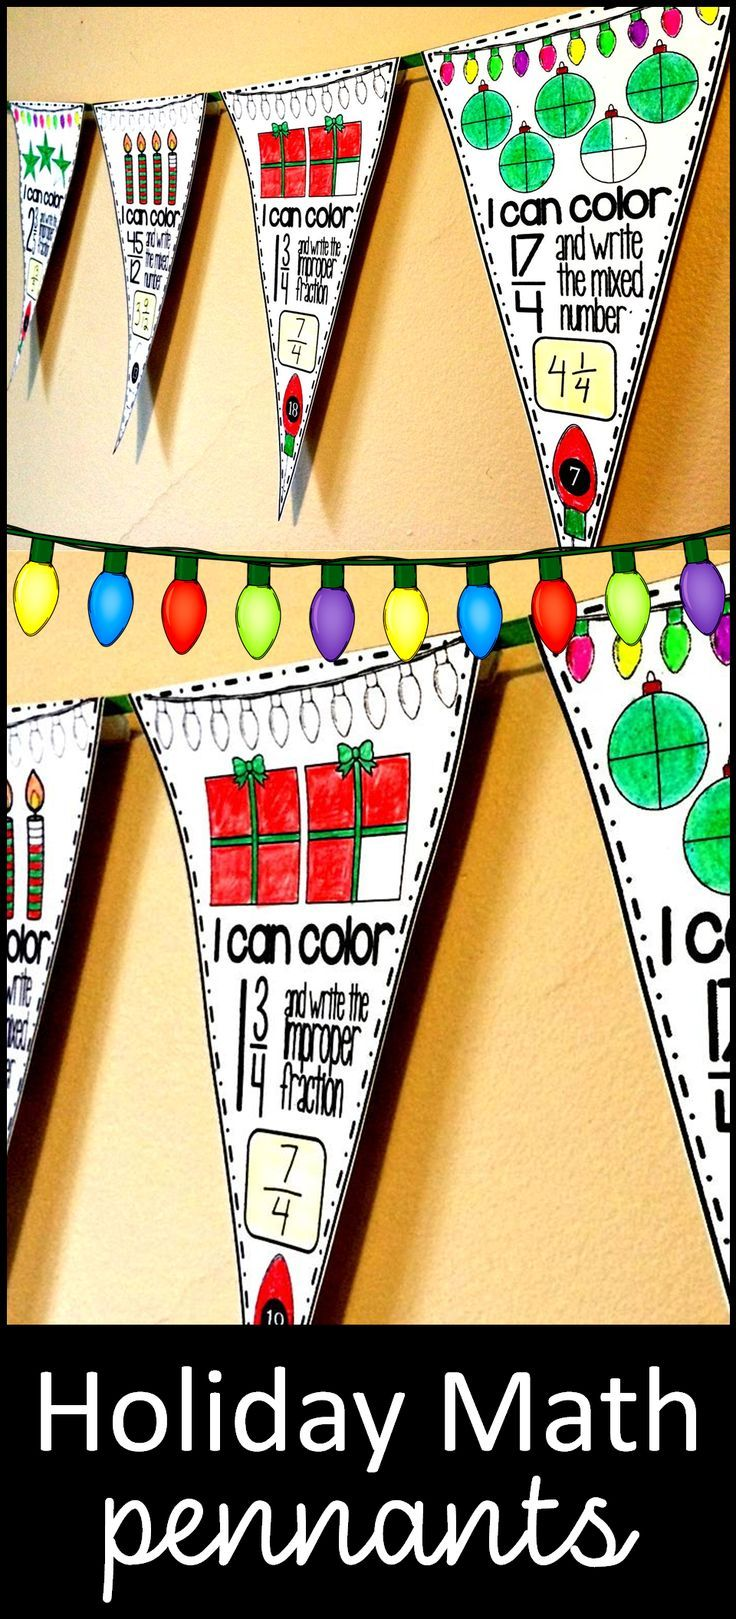 Math pennants are great activities to keep students engaged at the holidays and teachers happy! These Christmas themed printable math pennants ask students to convert from mixed numbers to improper fractions and back again. Kids get creative coloring their pennants and the end products are perfect Christmas classroom decoration or home decoration for homeschool families. #christmasmath #fractions #mathpennant #tpt